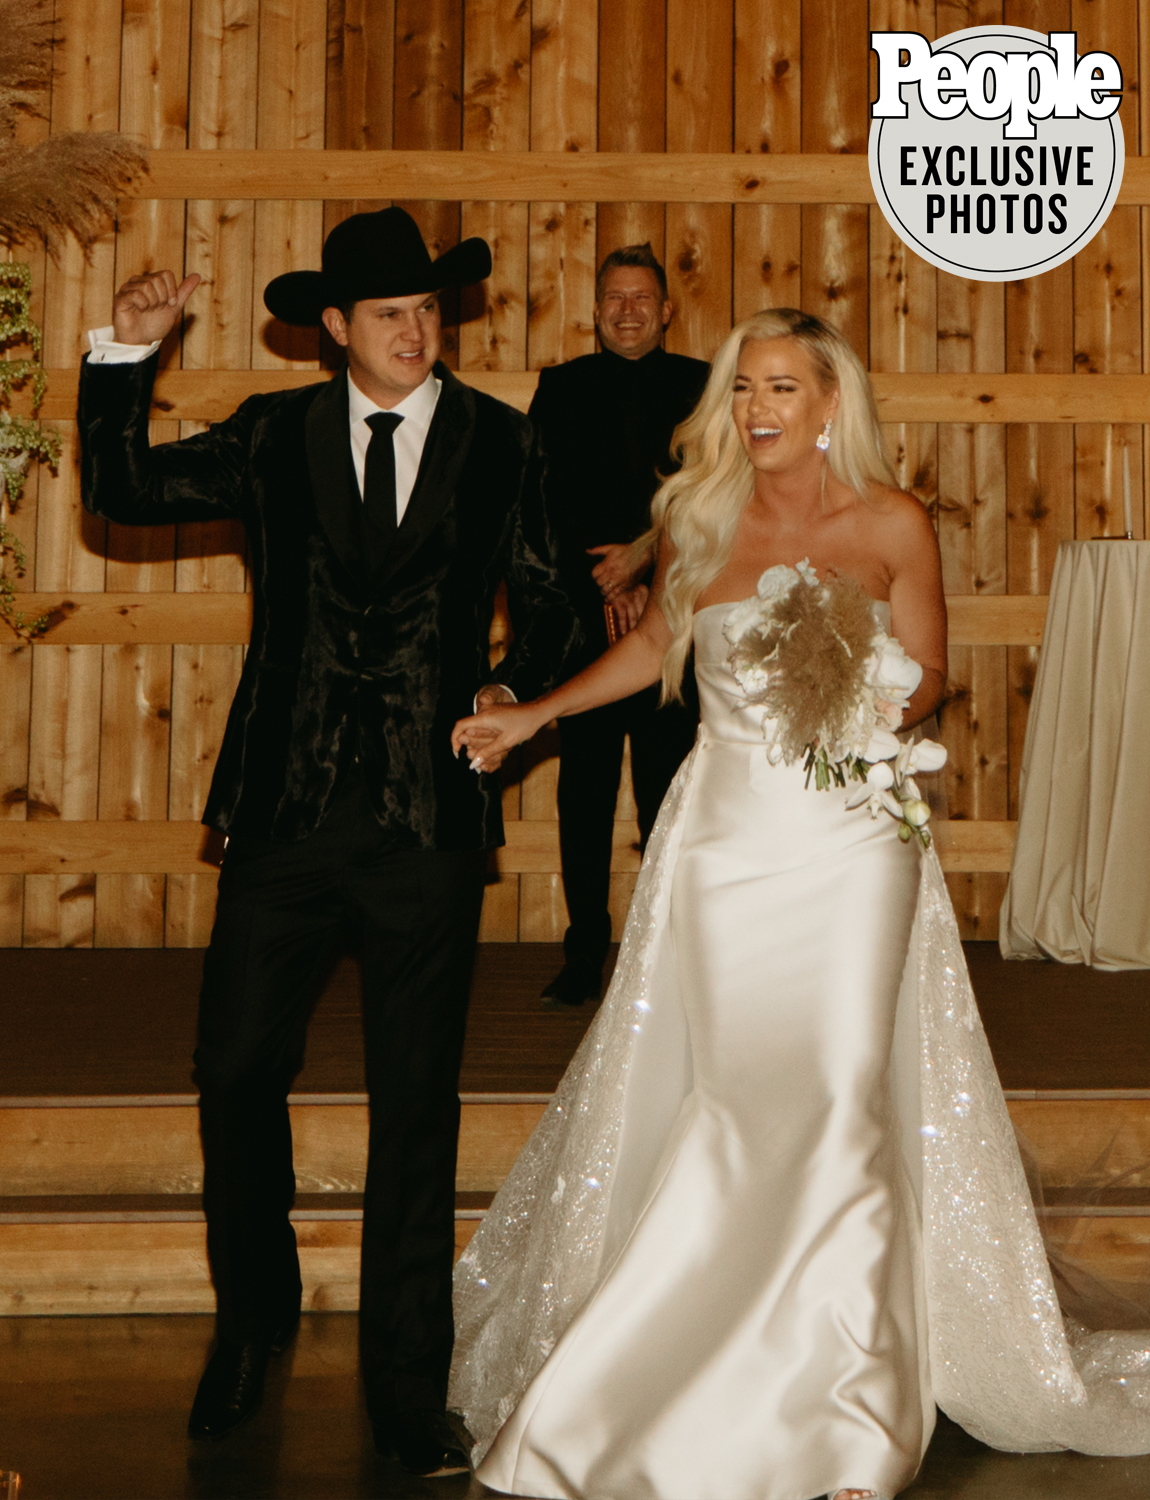 """The """"Ain't Always the Cowboy"""" singer, 35, and the hairstylist, 31, said """"I do"""" at Saddle Woods Farm in Murfreesboro, Tennessee, on Nov. 21, after canceling their plans for a Memorial Day weekend destination wedding due to the ongoing coronavirus pandemic.                             """"With so much of our families being in California we had to make the tough decision to downsize (drastically) twice, and we ended up with a small group of just our immediate family and closest friends in town,"""" Duncan, who worked with Habitat Events to plan the local wedding, said. """"We hope to eventually have a 'wedding tour' as Jon calls it and celebrate with all our family and friends in California, Nashville and Texas.""""                             The couple took a number of precautions amid the ongoing pandemic, including having all of their guests tested prior to the wedding. They also traded the original buffet for a sit-down dinner at spaced-apart tables and had sanitation stations and custom """"Parditime"""" masks available for guests. The majority of the ceremony and reception took place in a flex indoor/outdoor space with heaters."""